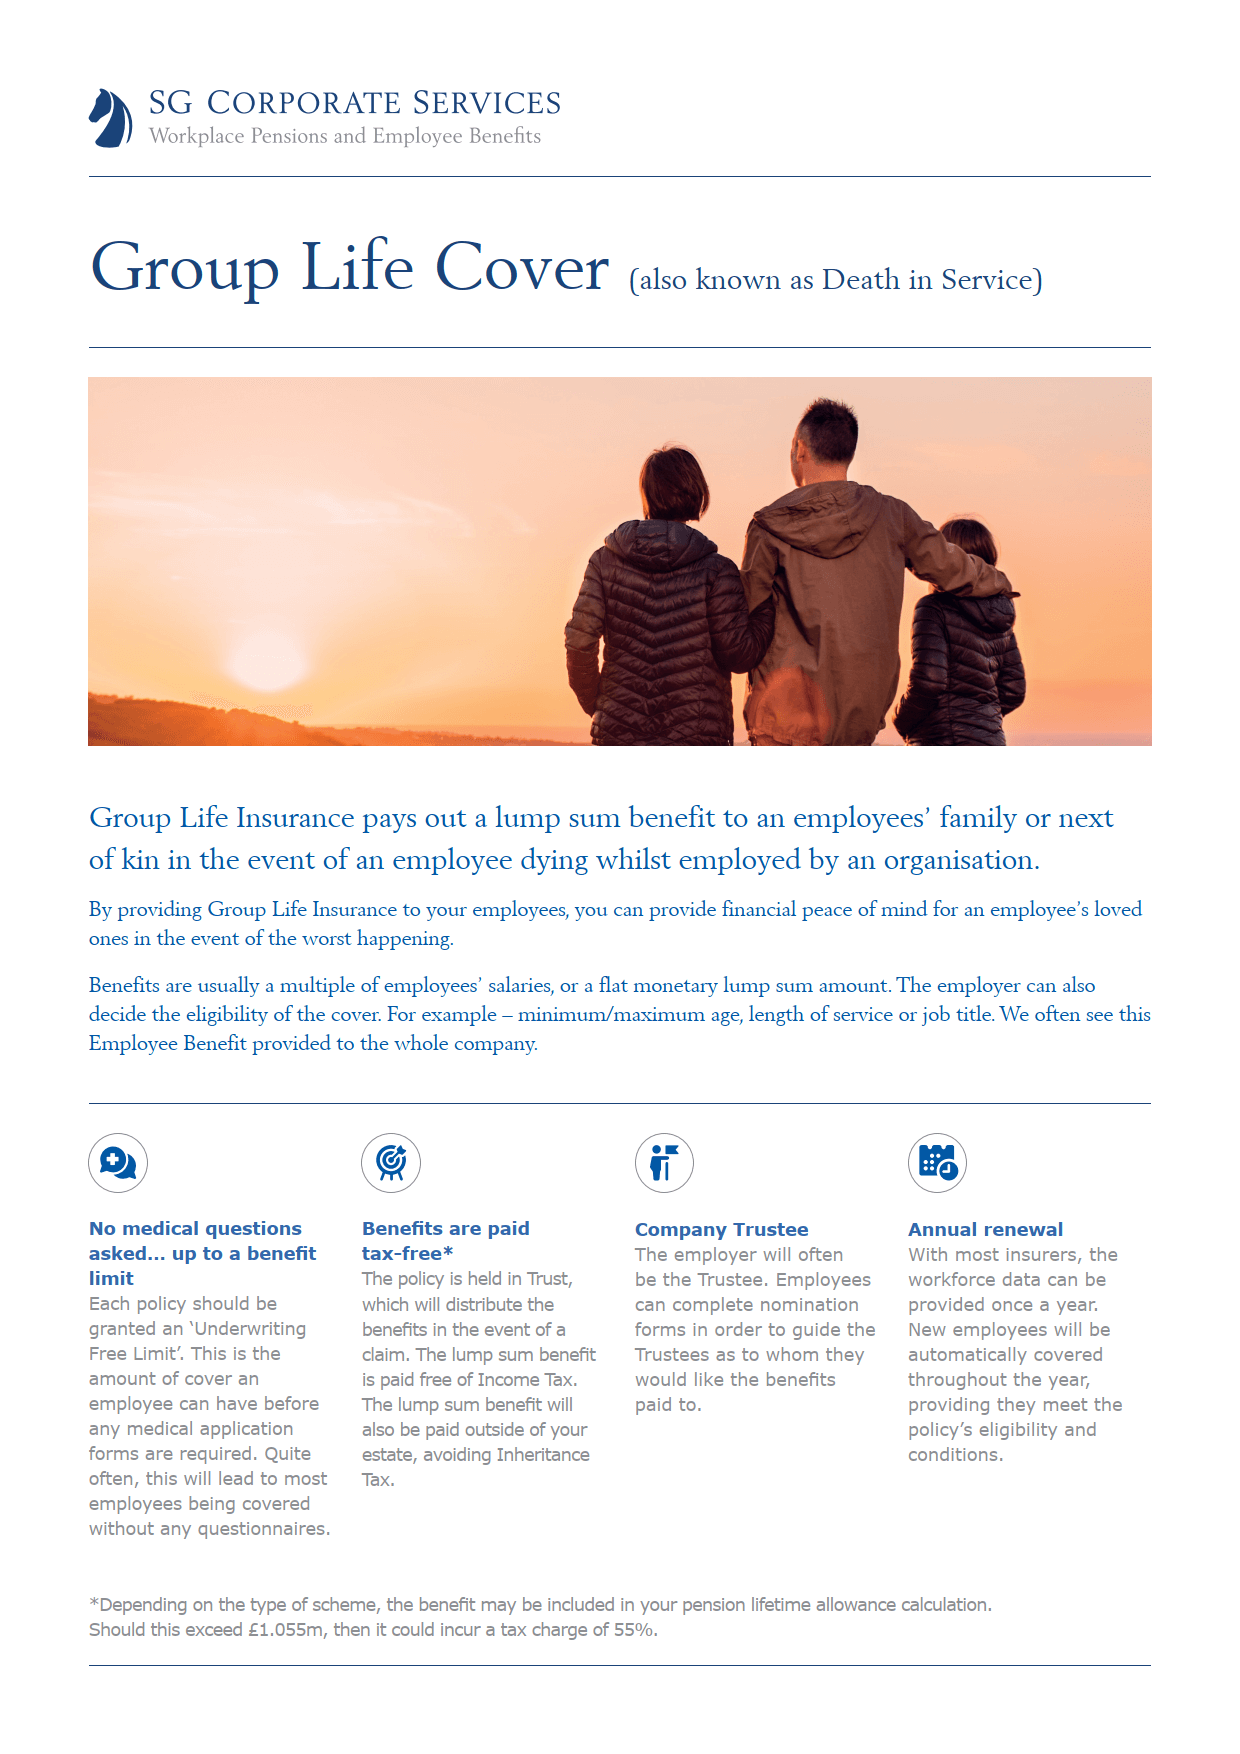 Product Guide - Group Life Cover